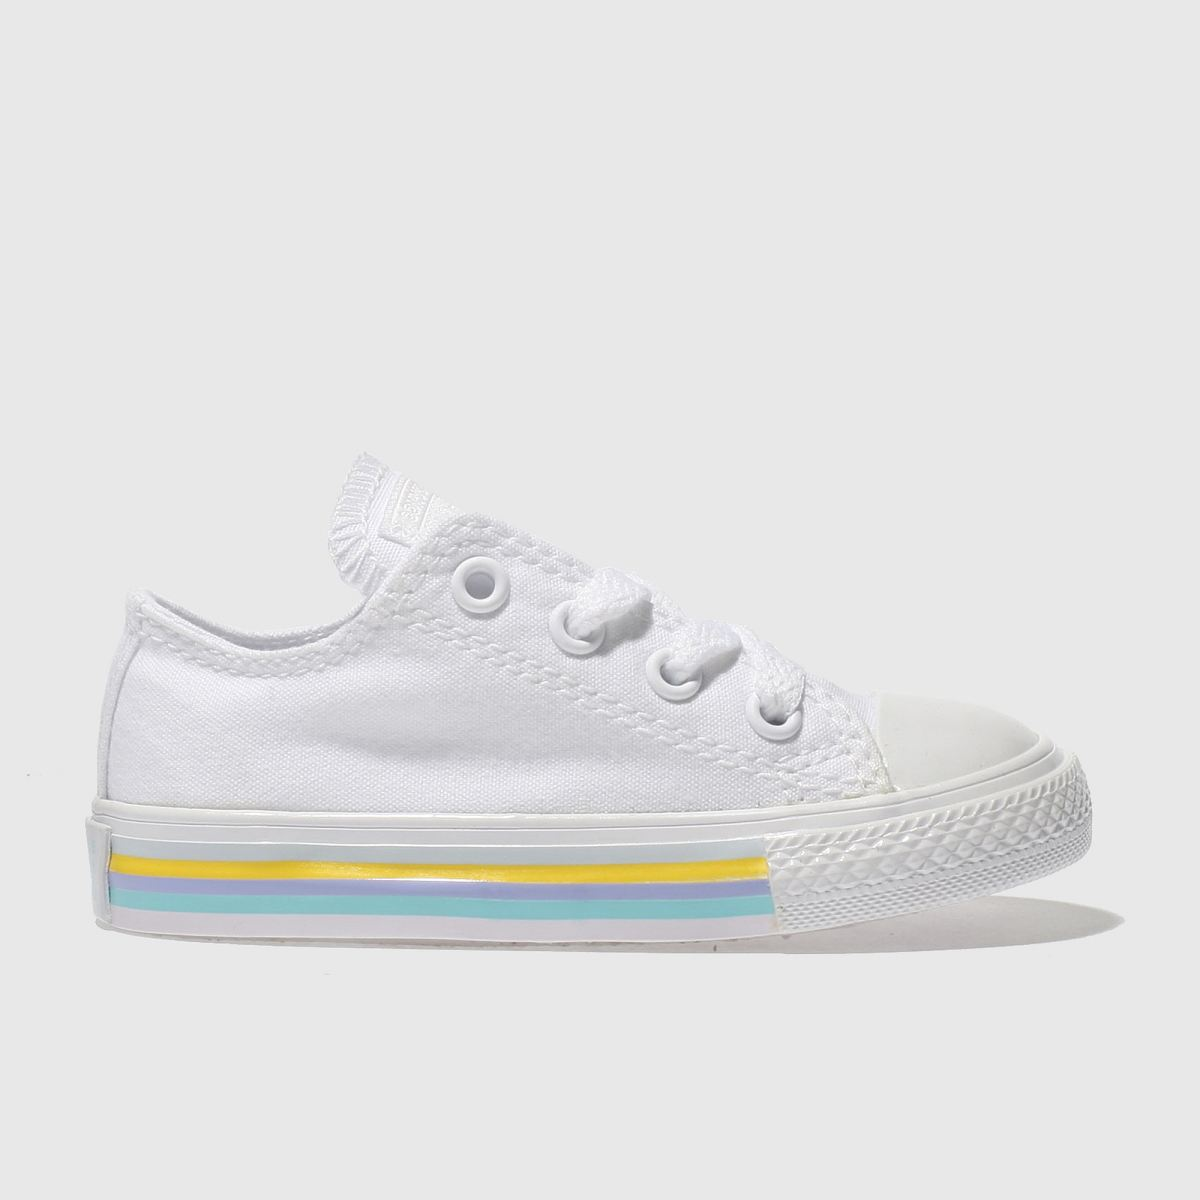 Converse White Chuck Taylor All Star Lo Girls Toddler Toddler